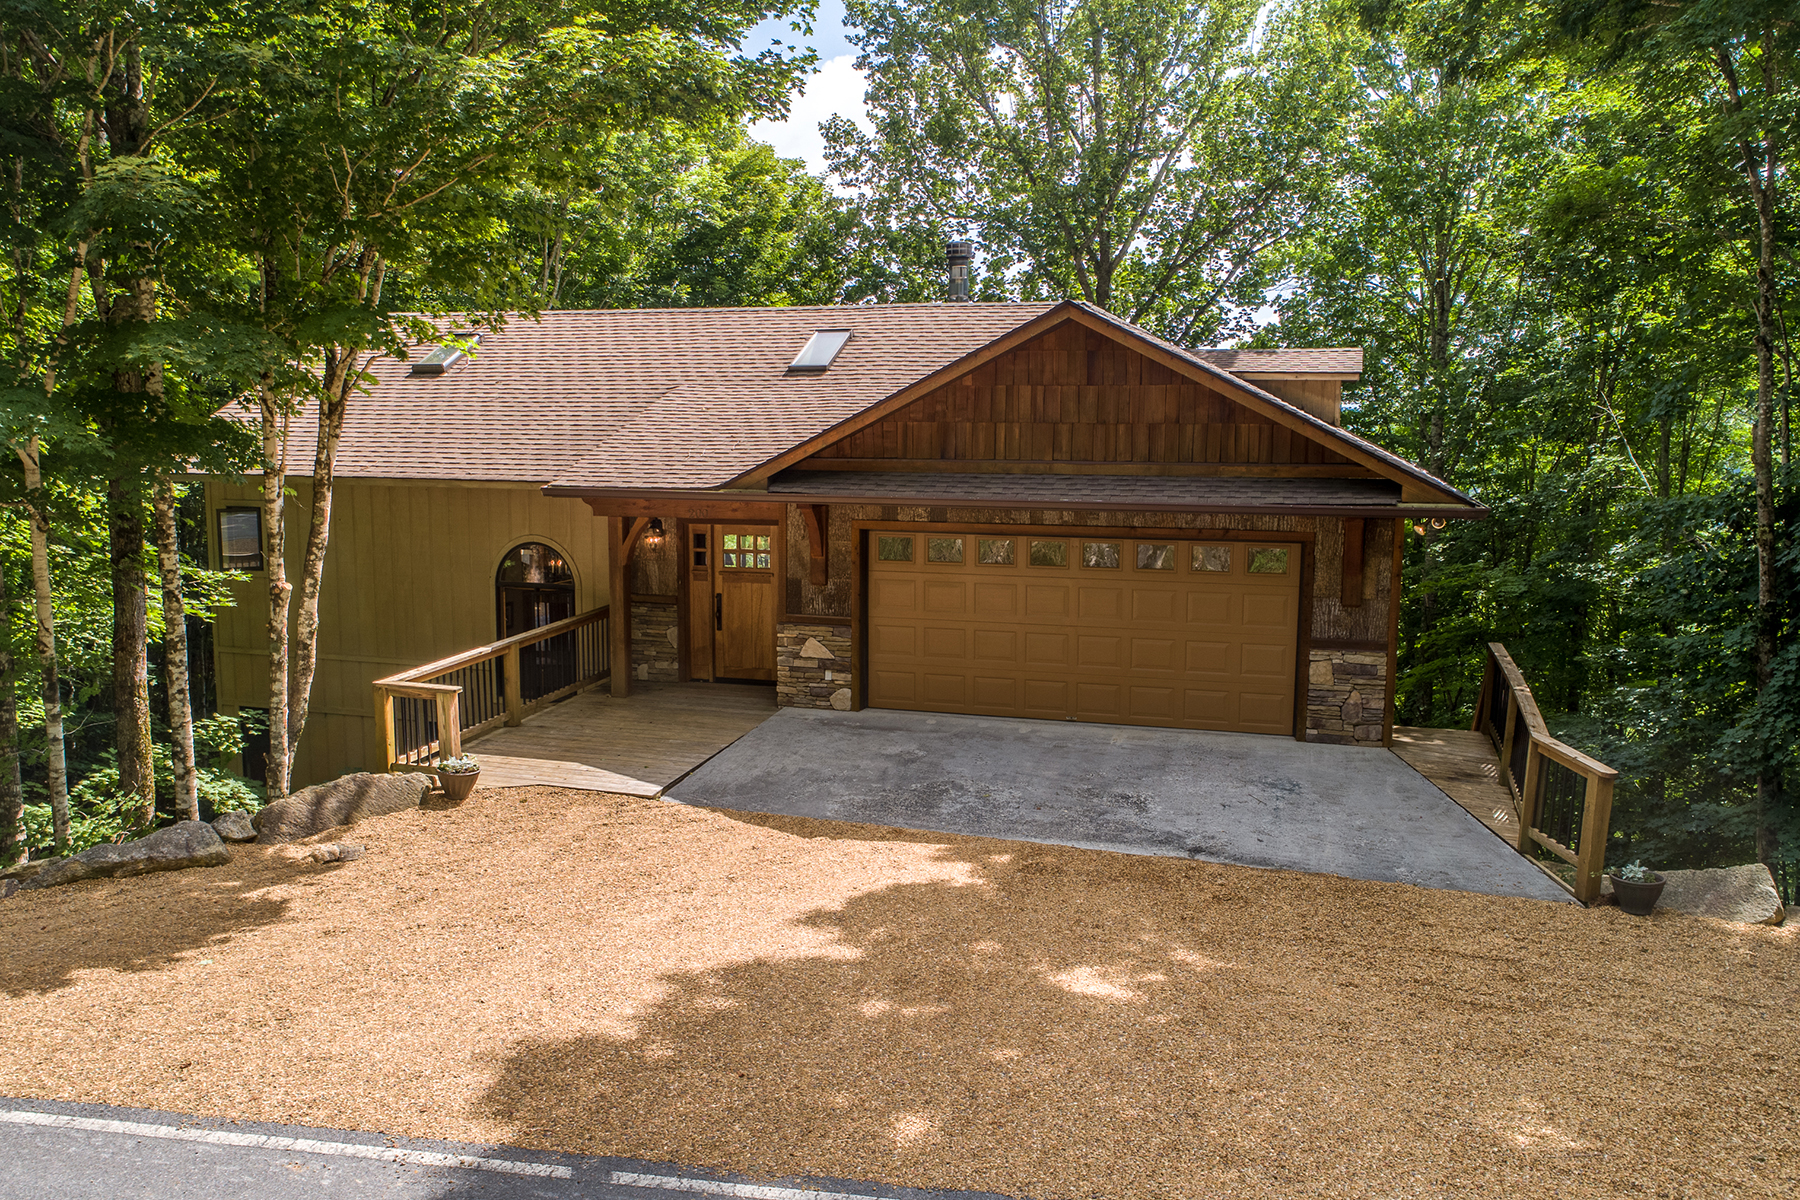 Single Family Homes for Sale at BEECH MOUNTAIN - GRASSY GAP LOW 200 St. Andrews Rd Beech Mountain, North Carolina 28604 United States